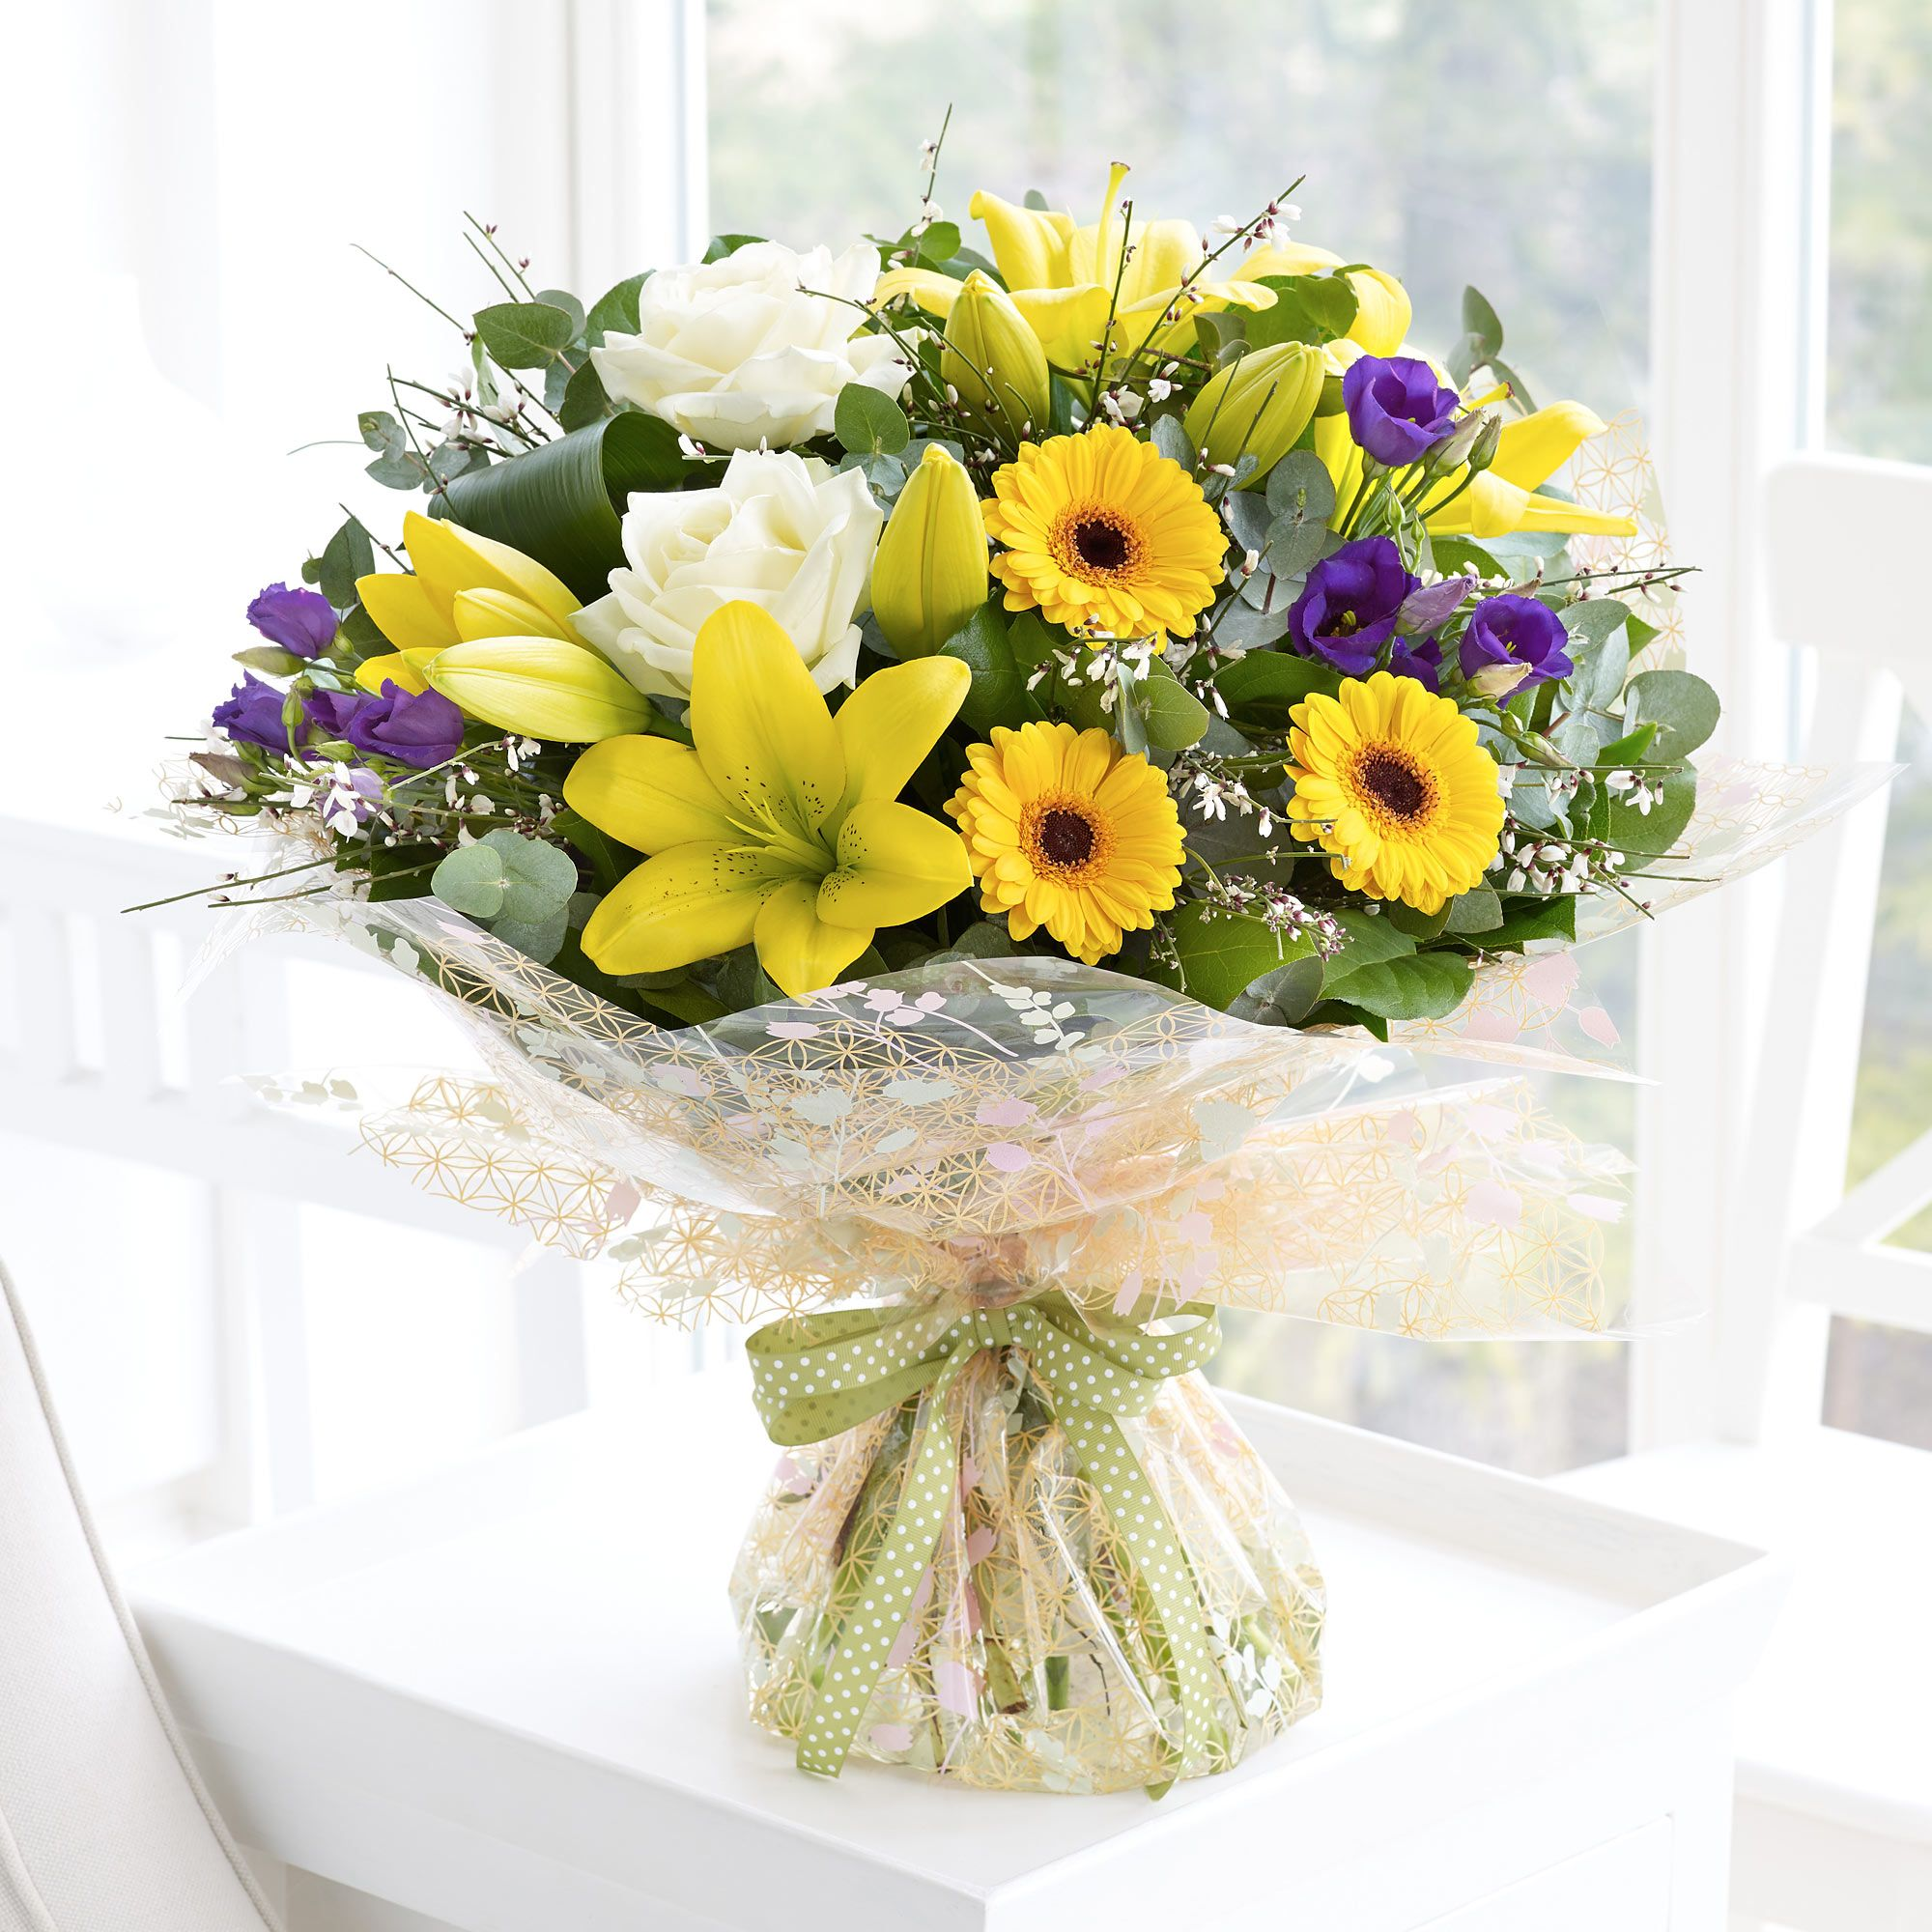 Featuring purple lisianthus, white roses, yellow lilies